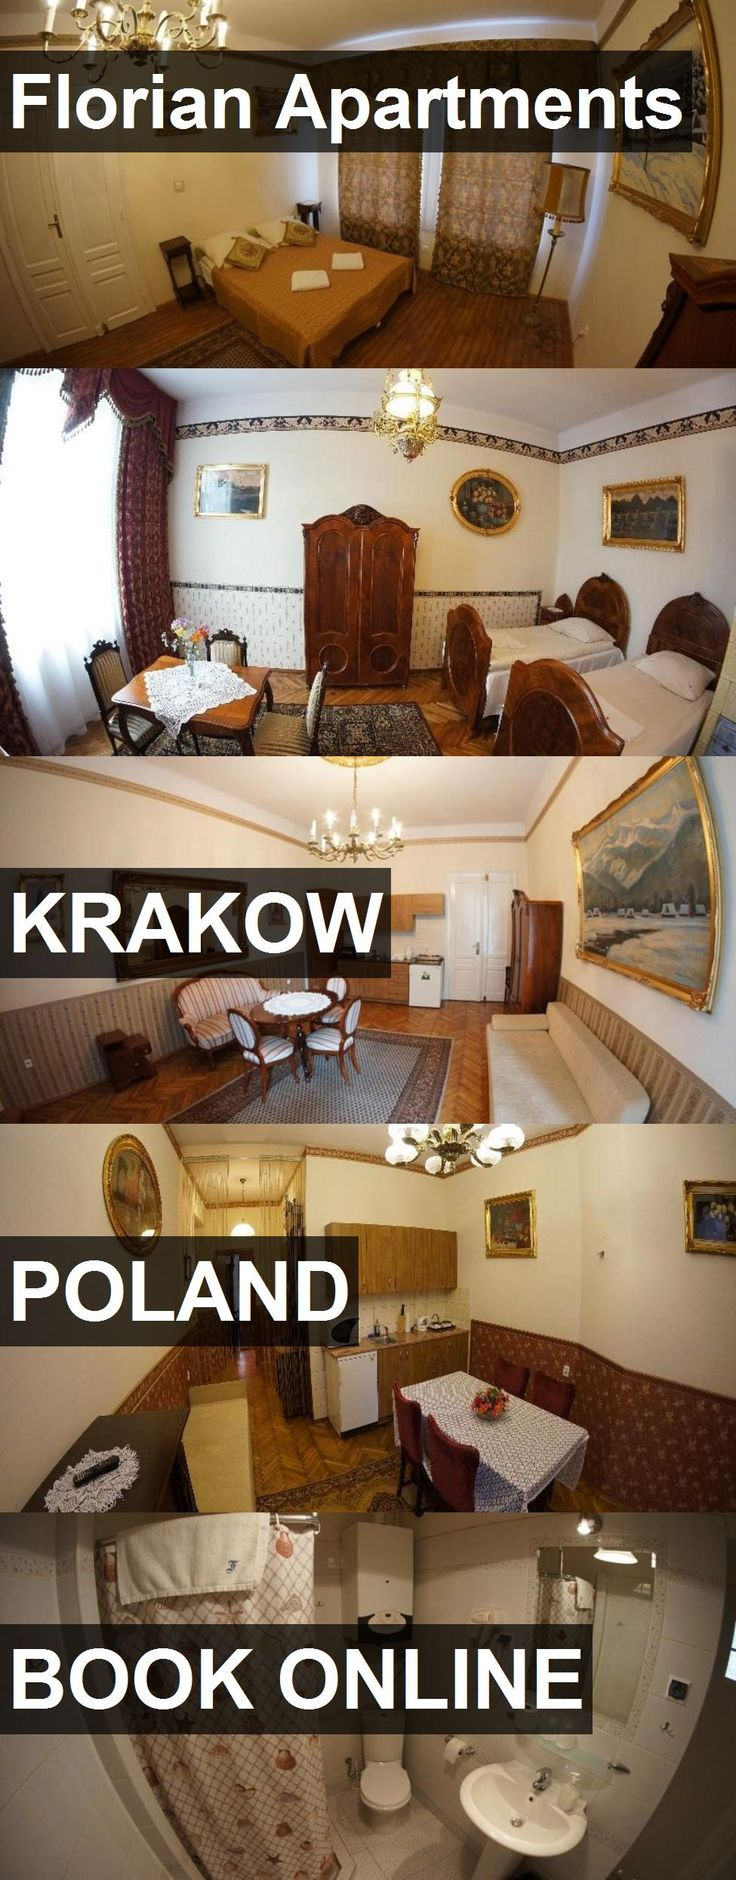 Hotel Florian Apartments in Krakow, Poland. For more information, photos, reviews and best prices please follow the link. #Poland #Krakow #FlorianApartments #hotel #travel #vacation